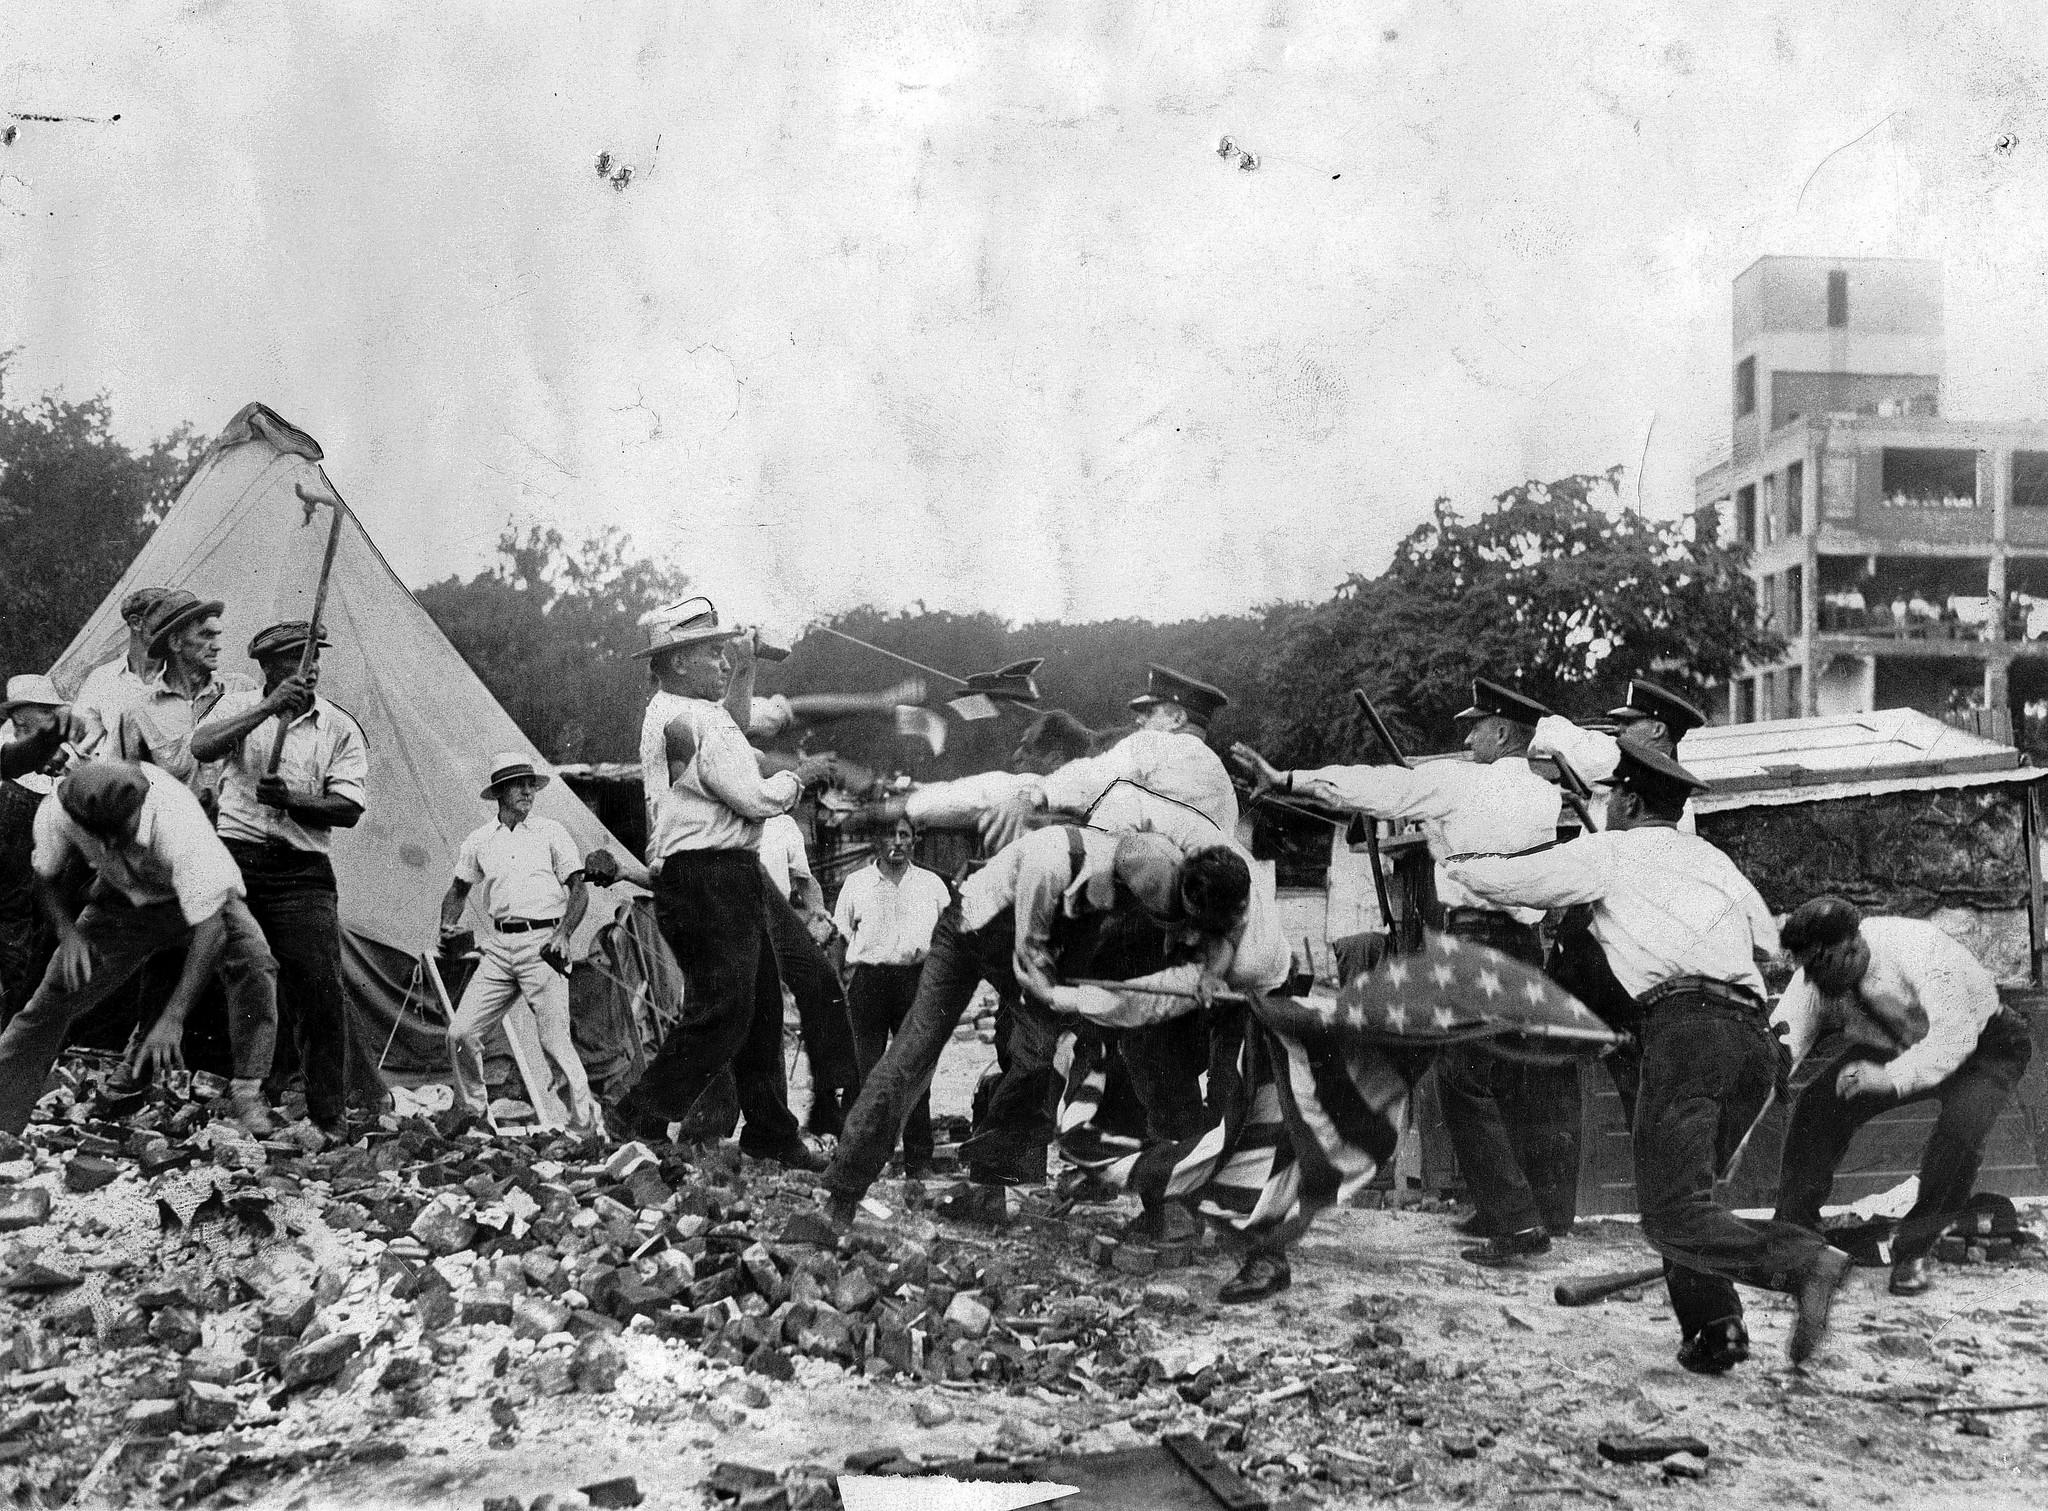 World War I veterans throw bricks and stones at charging police officers when the police tried to evict them from camping on government property in Washington, D.C., on July 28, 1932.